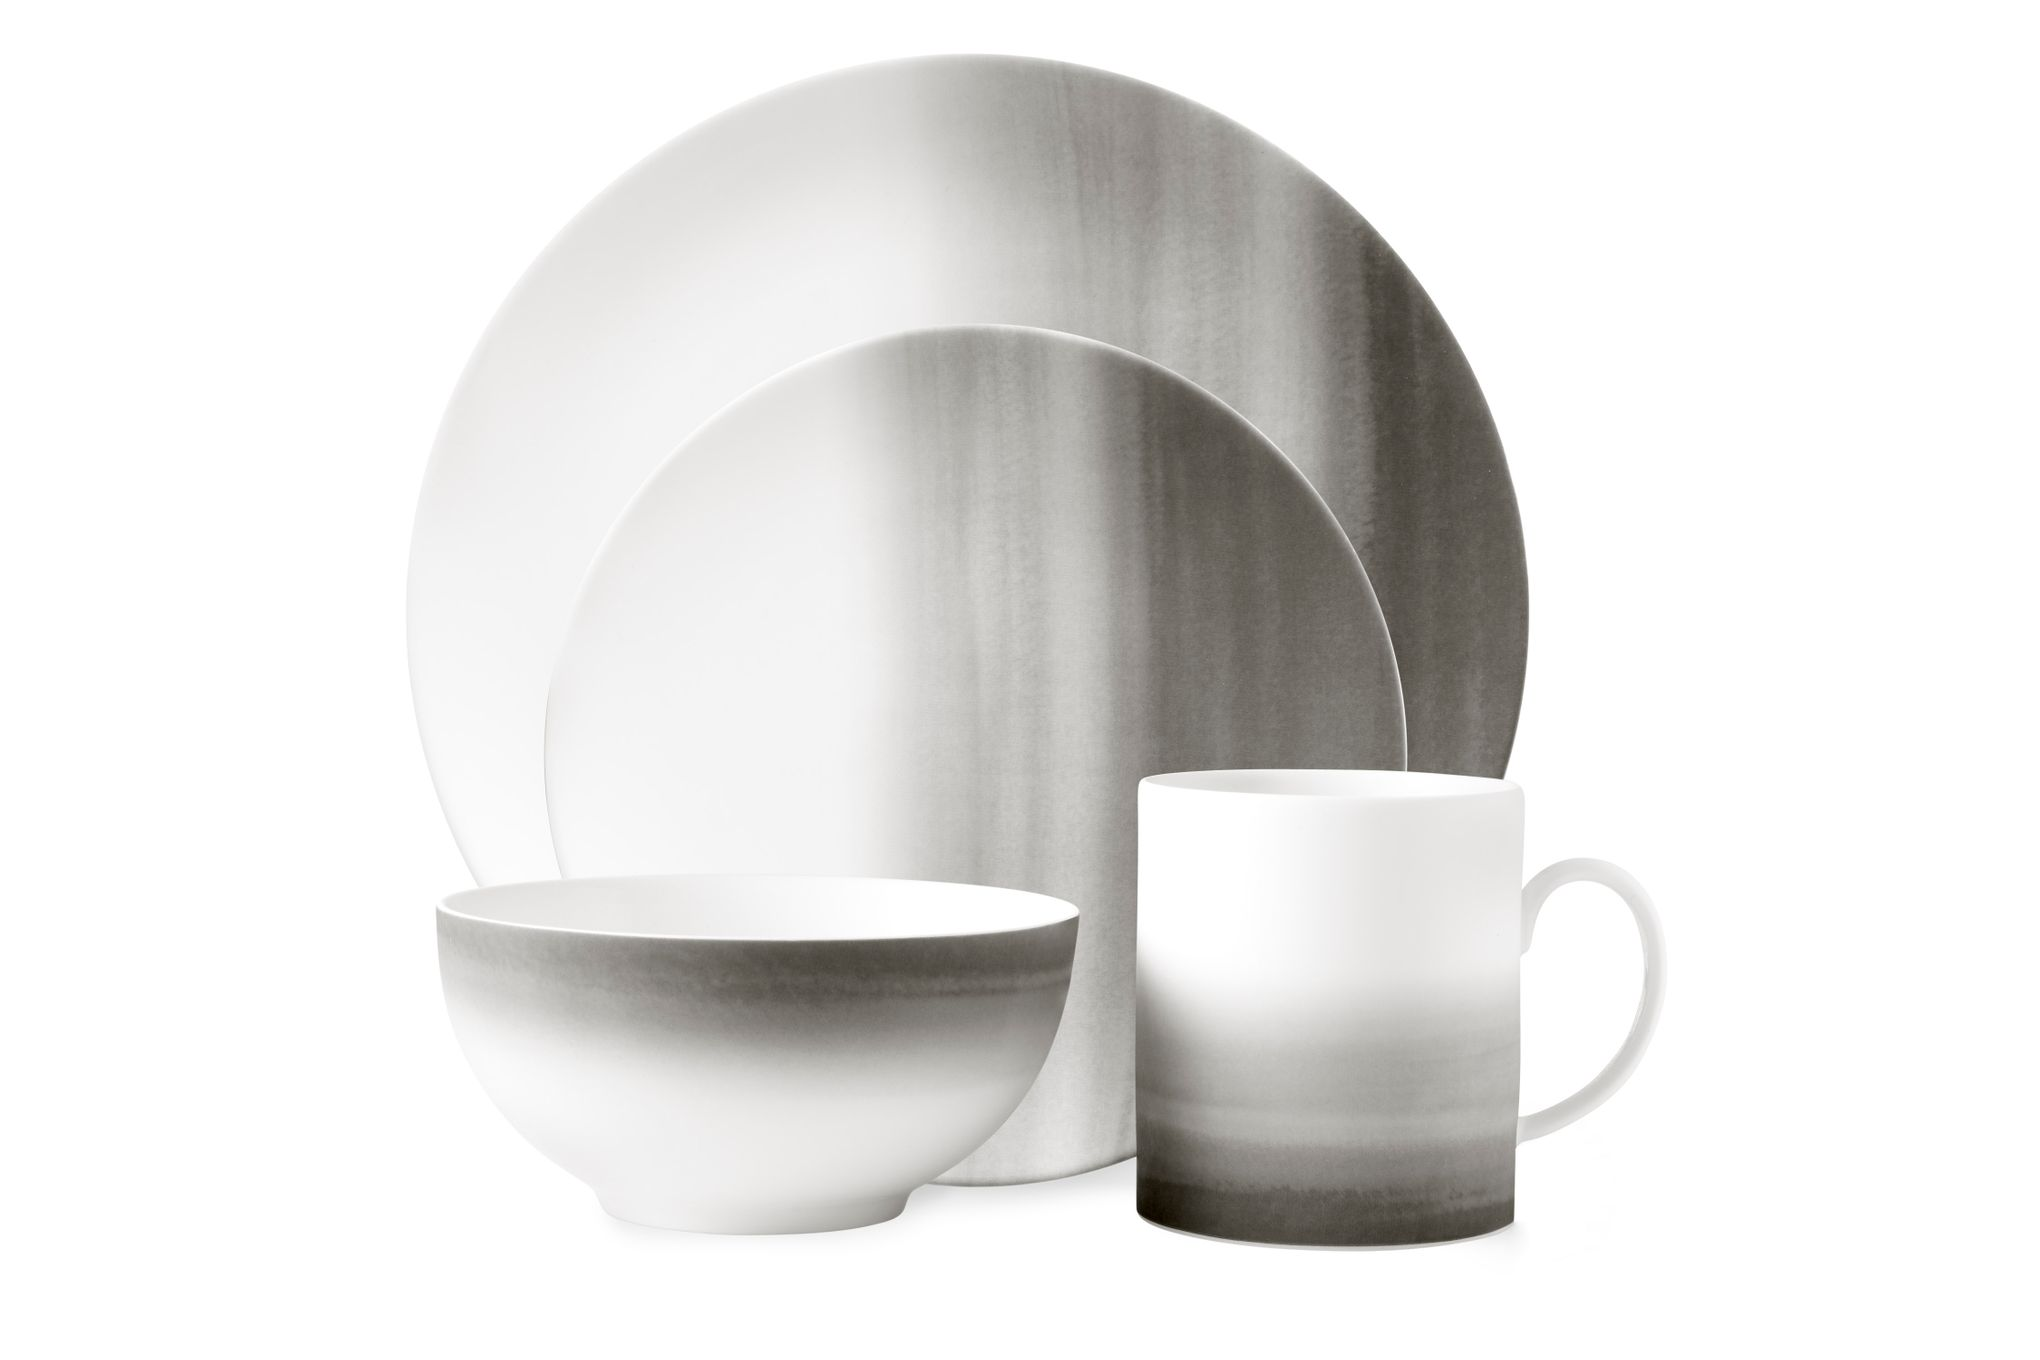 Vera Wang for Wedgwood Degradee 4 Piece Place Setting thumb 1